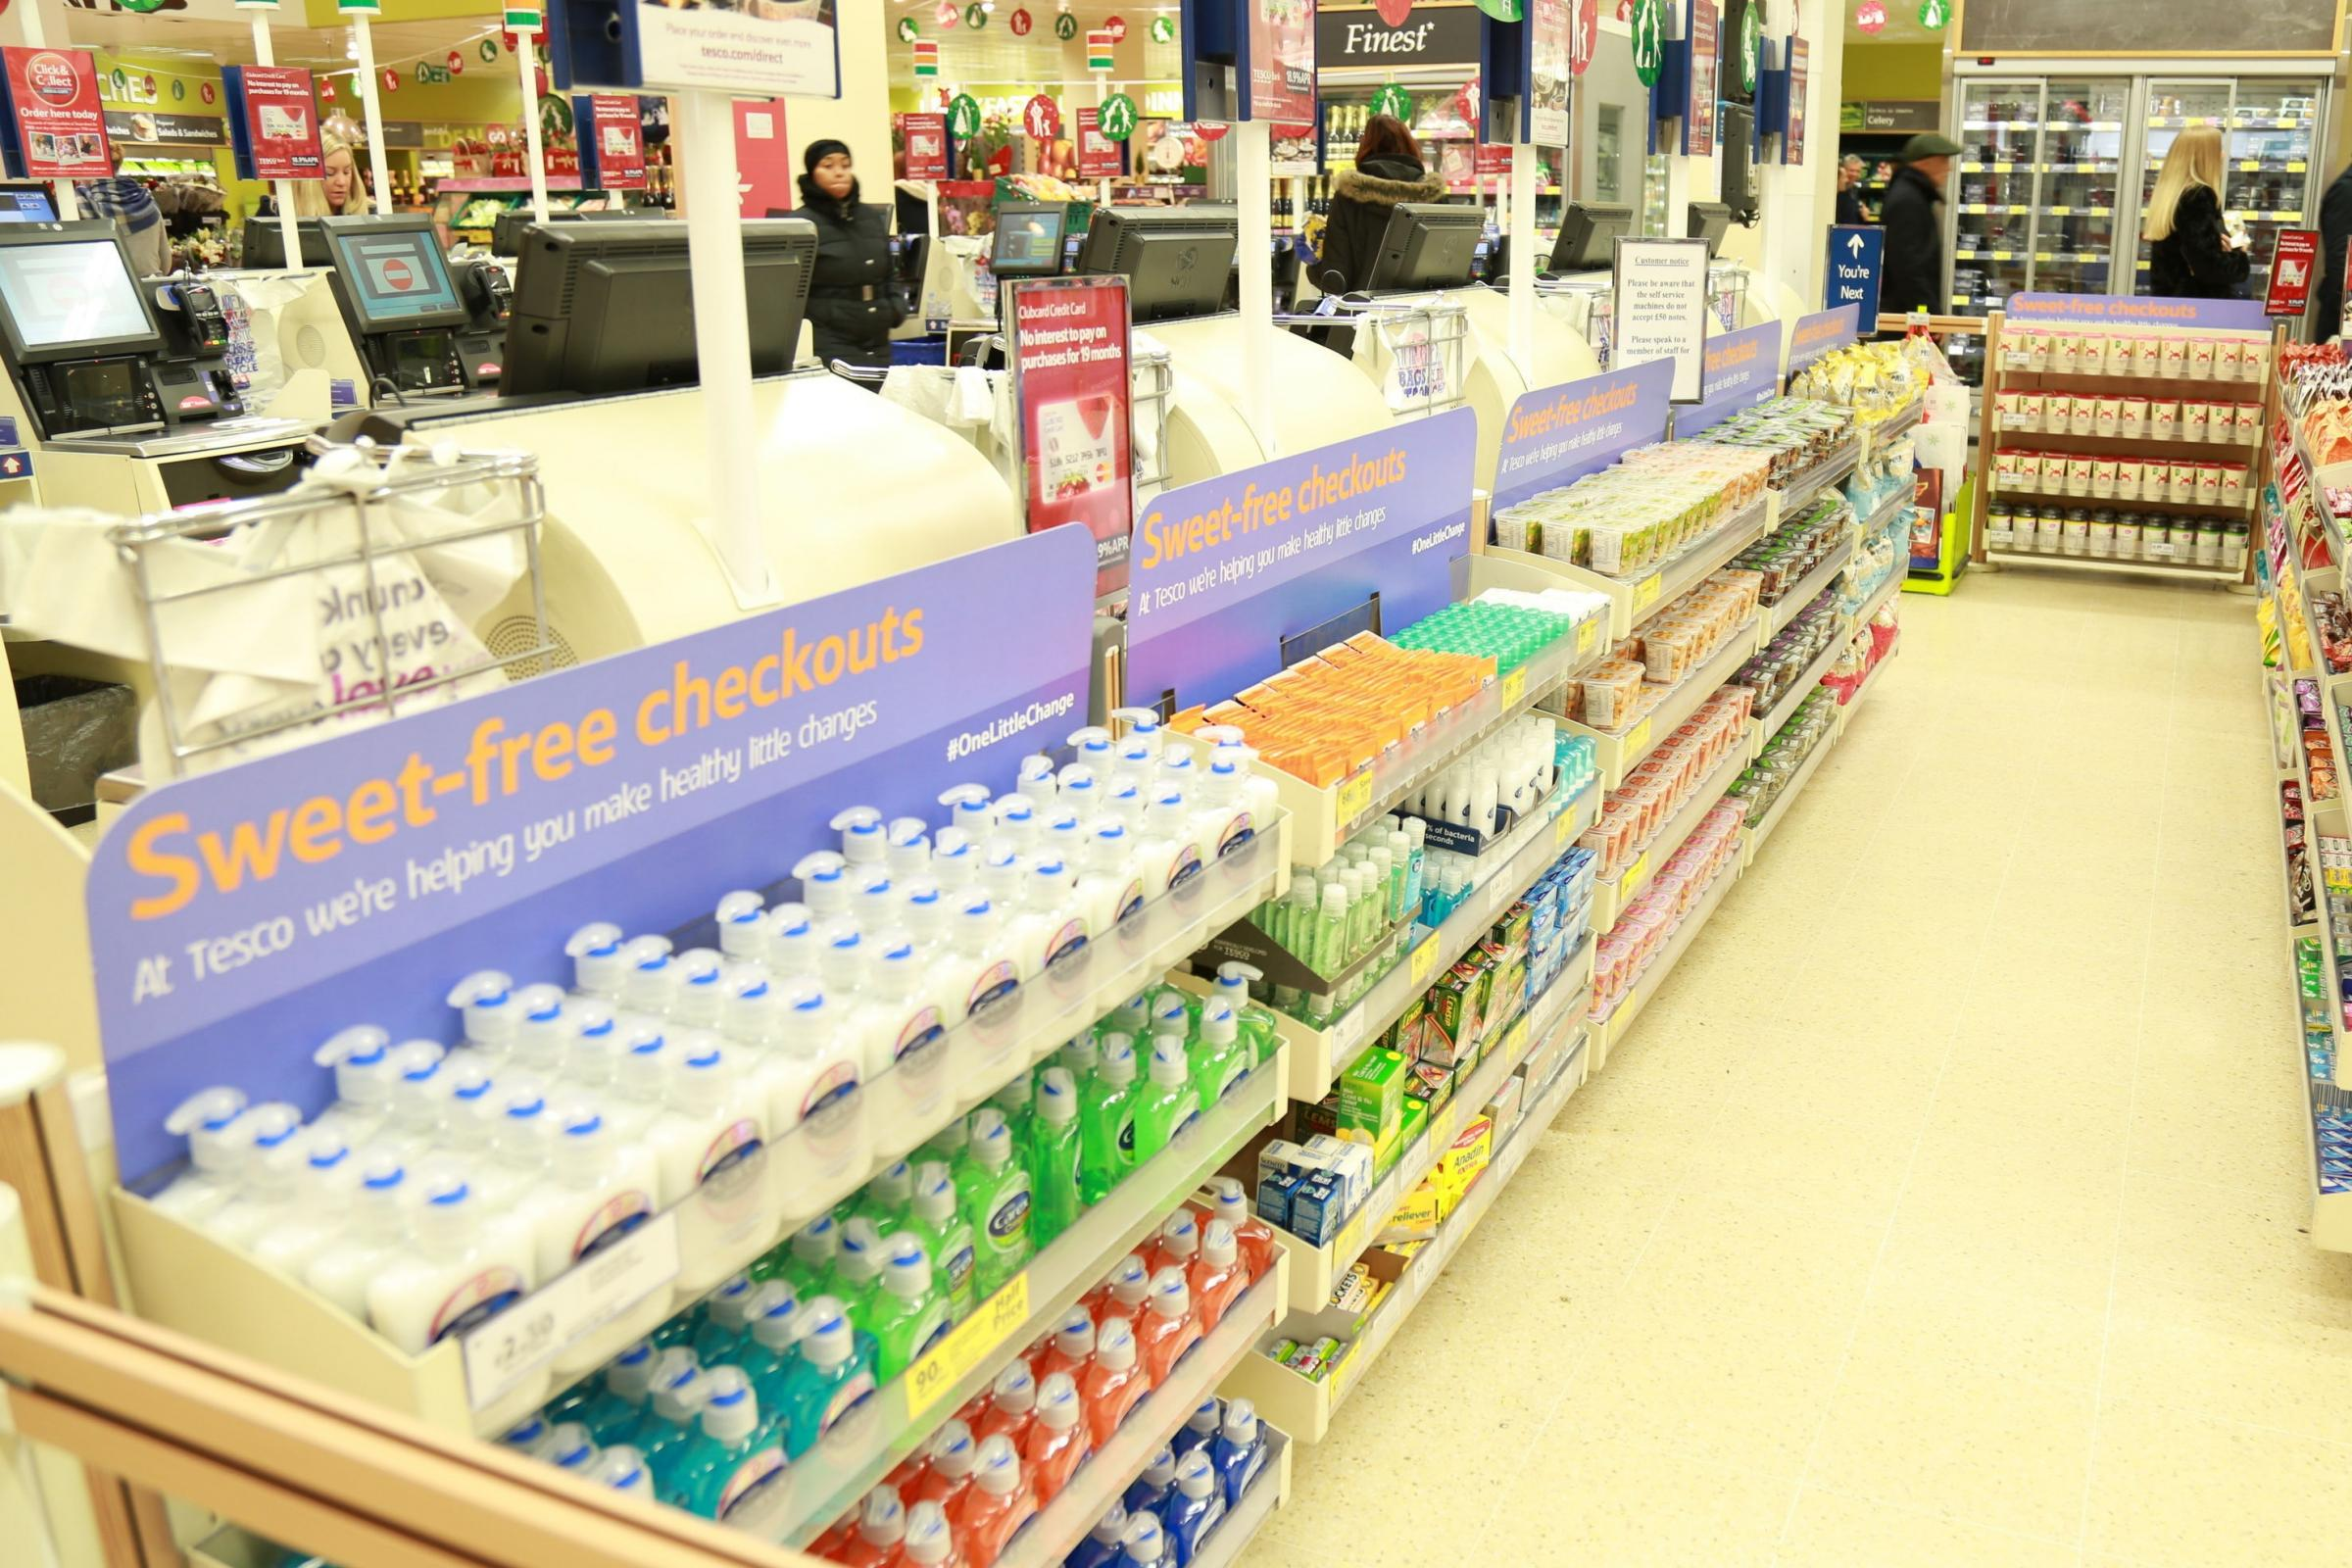 Sweets-free checkouts